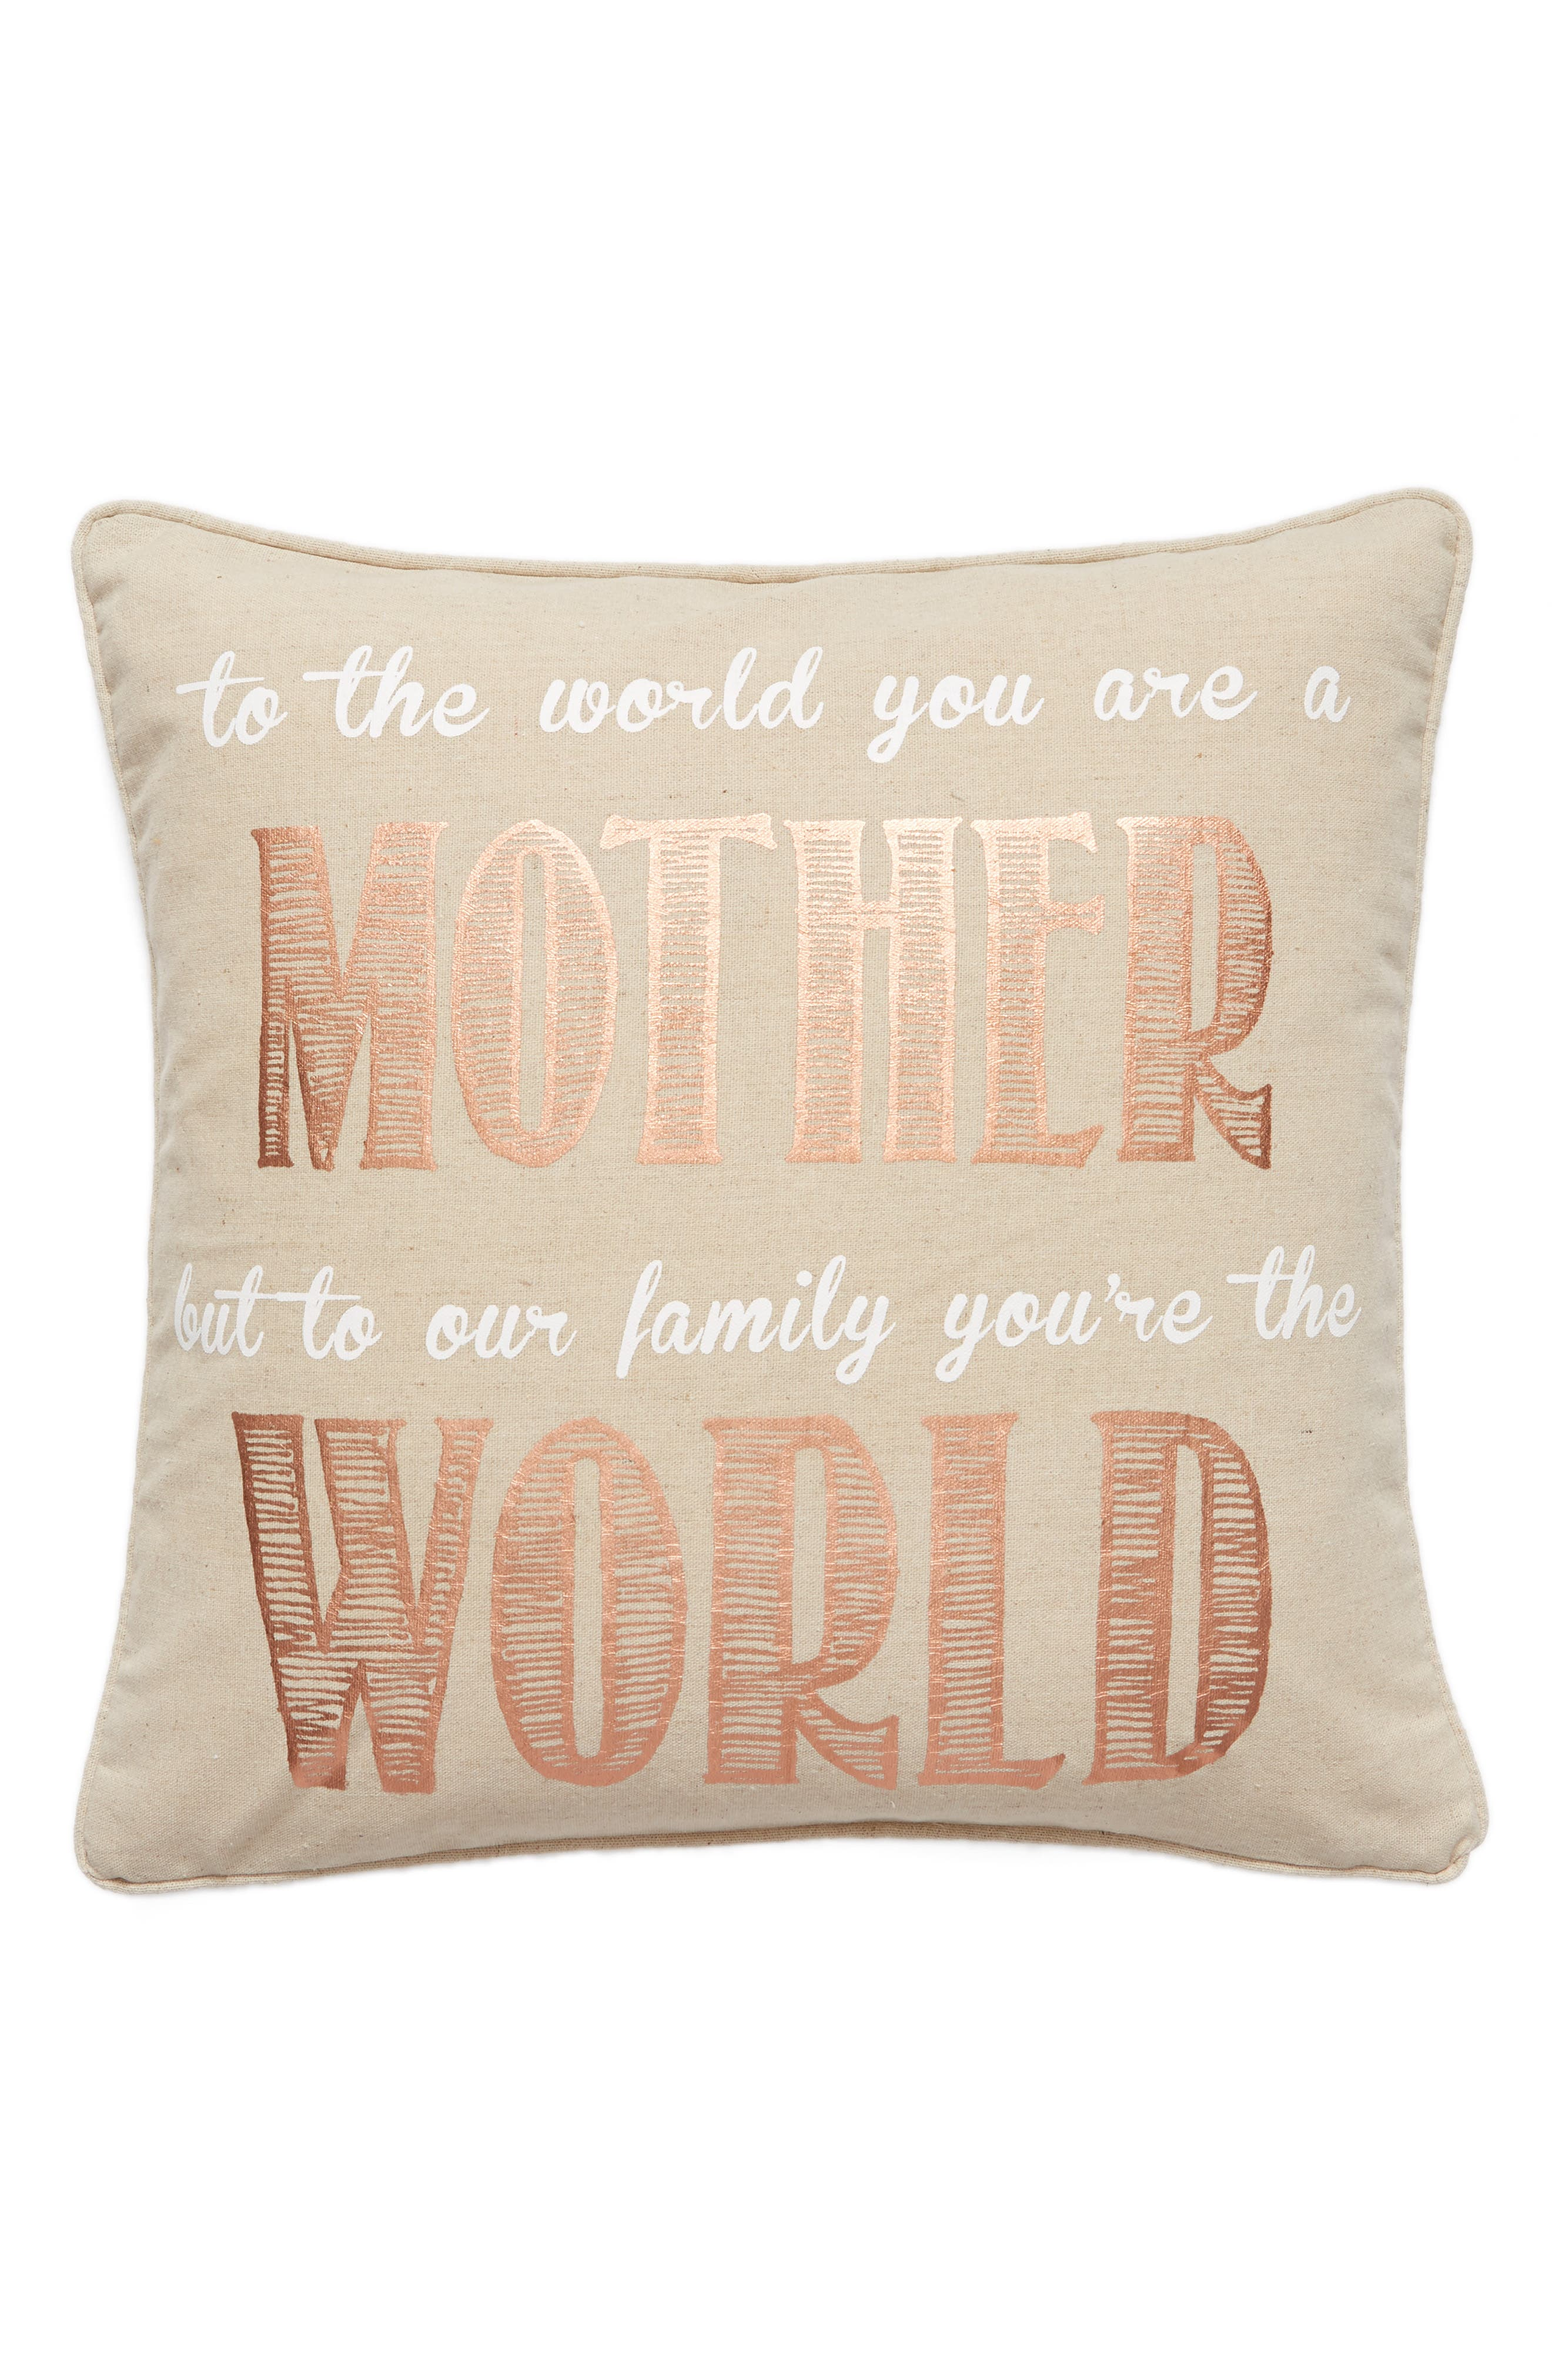 To the World You Are a Mother Accent Pillow,                         Main,                         color, 250